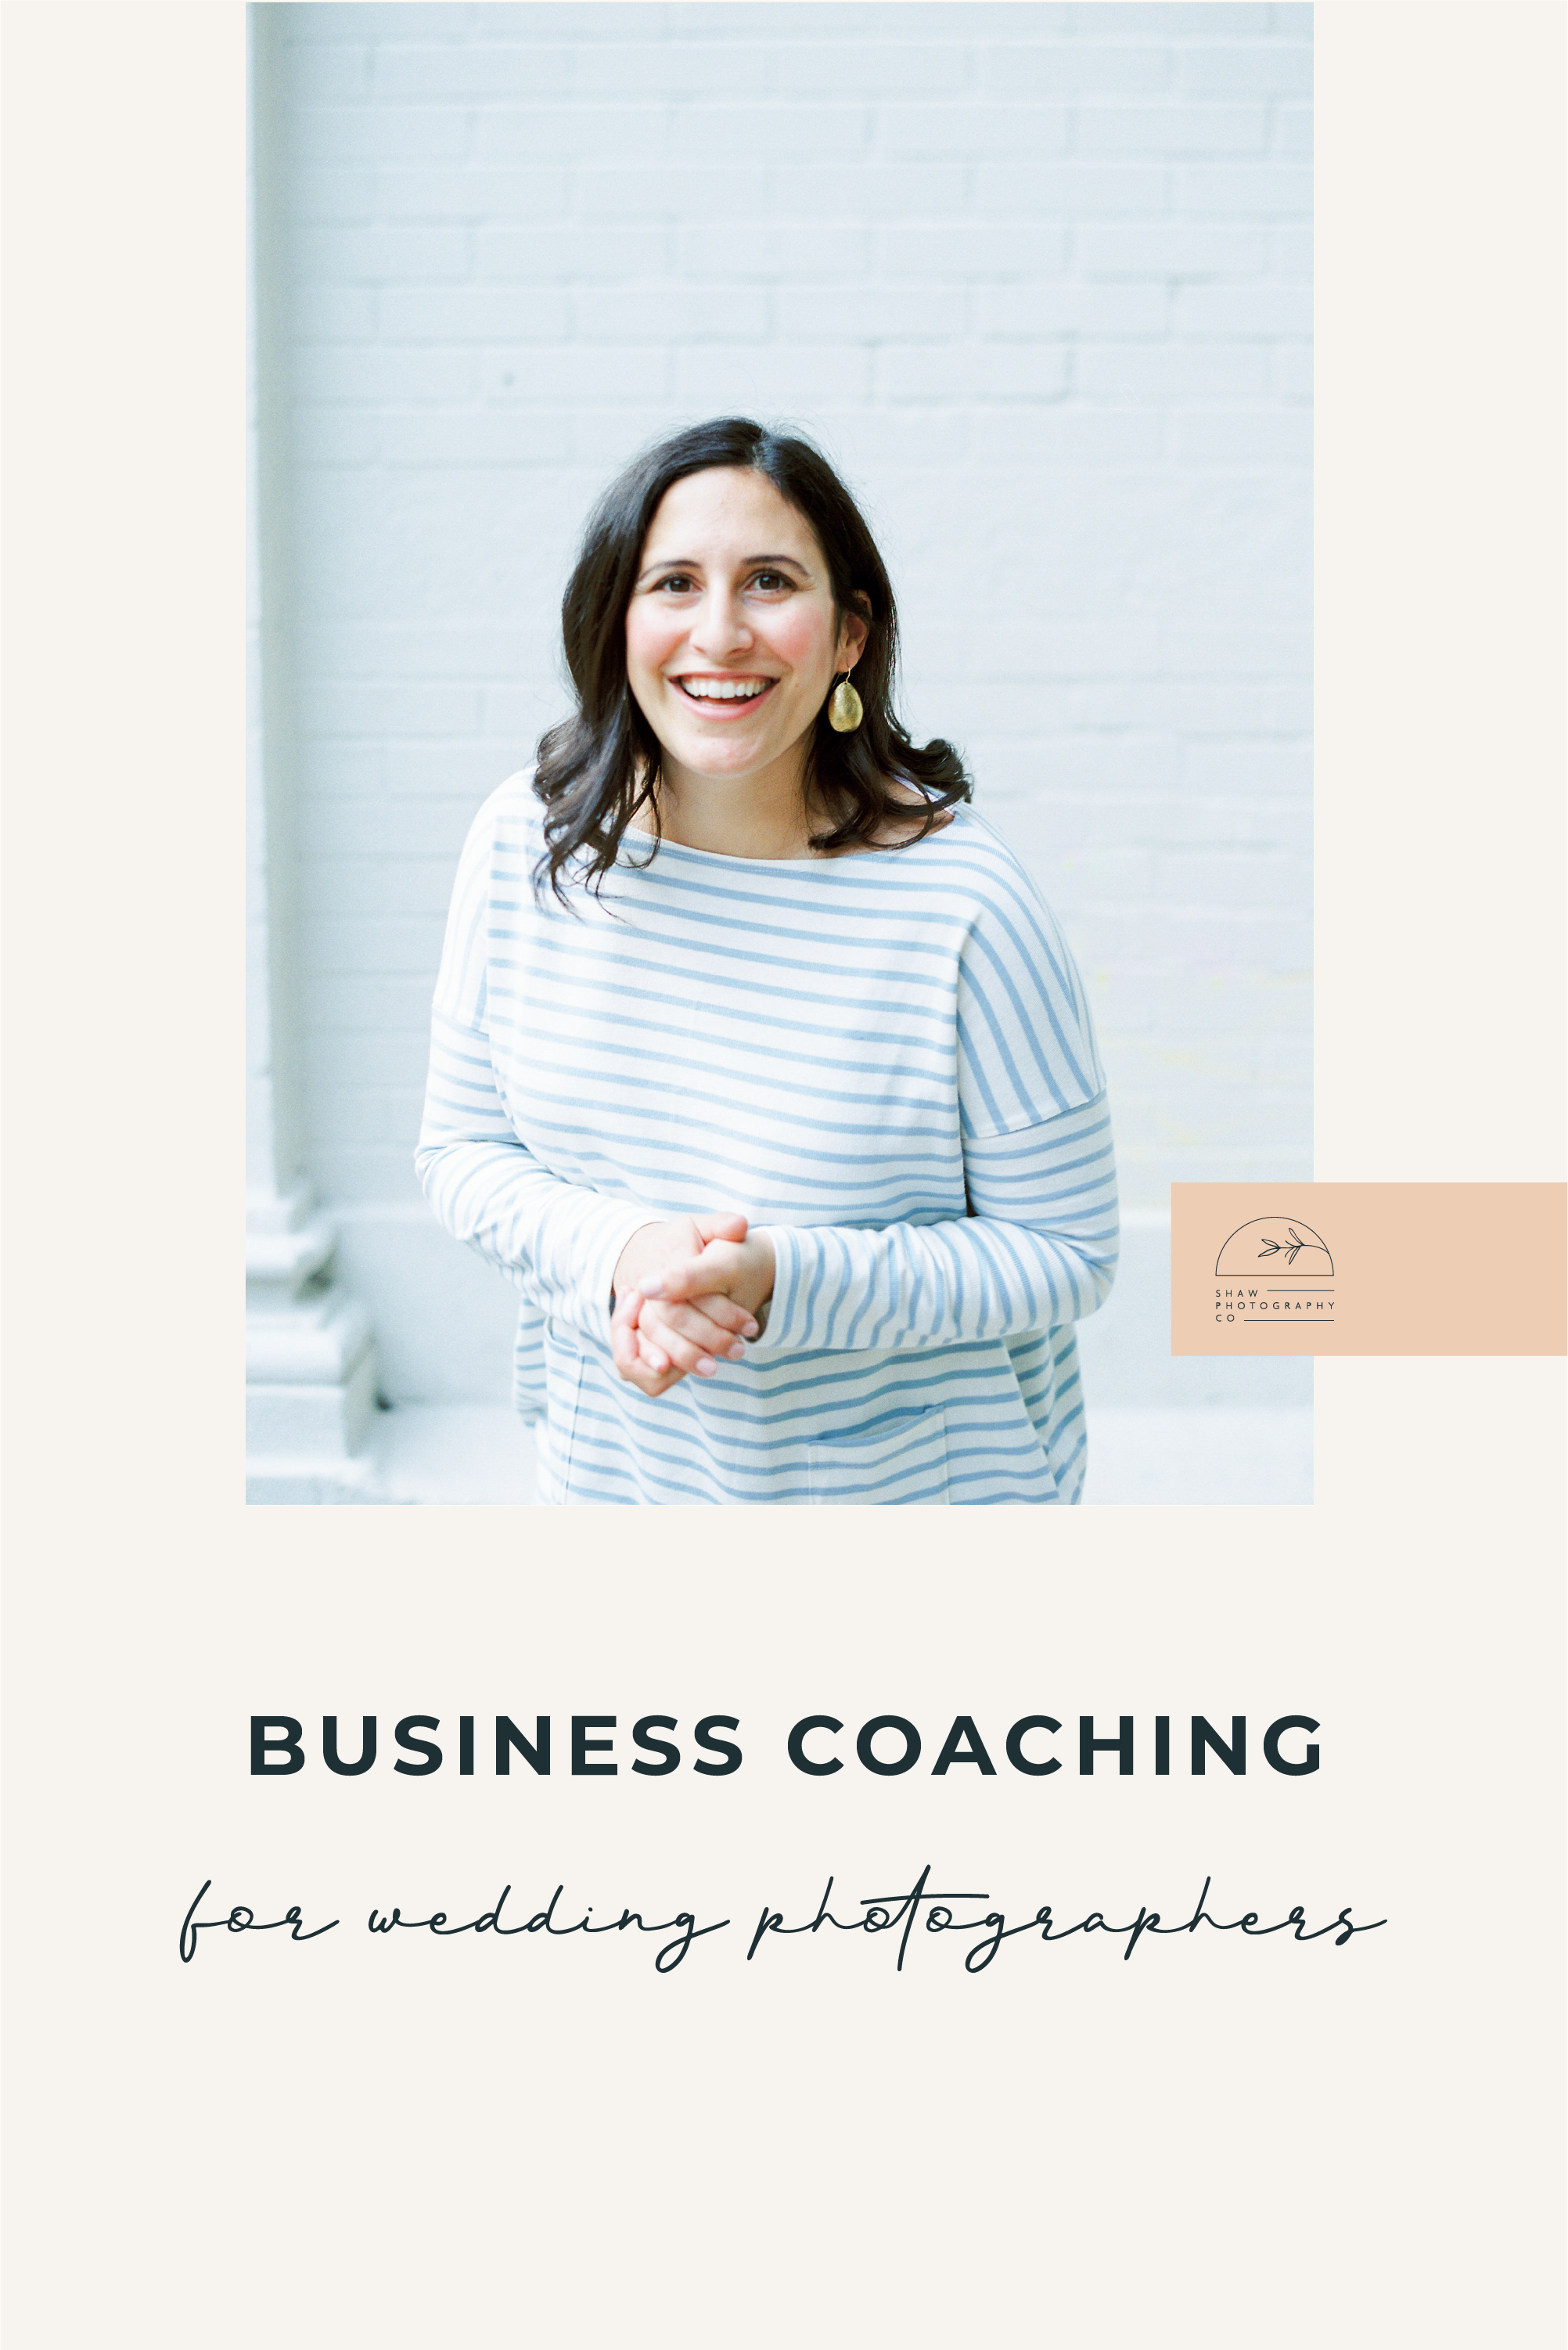 Business Coaching for Wedding Photographers